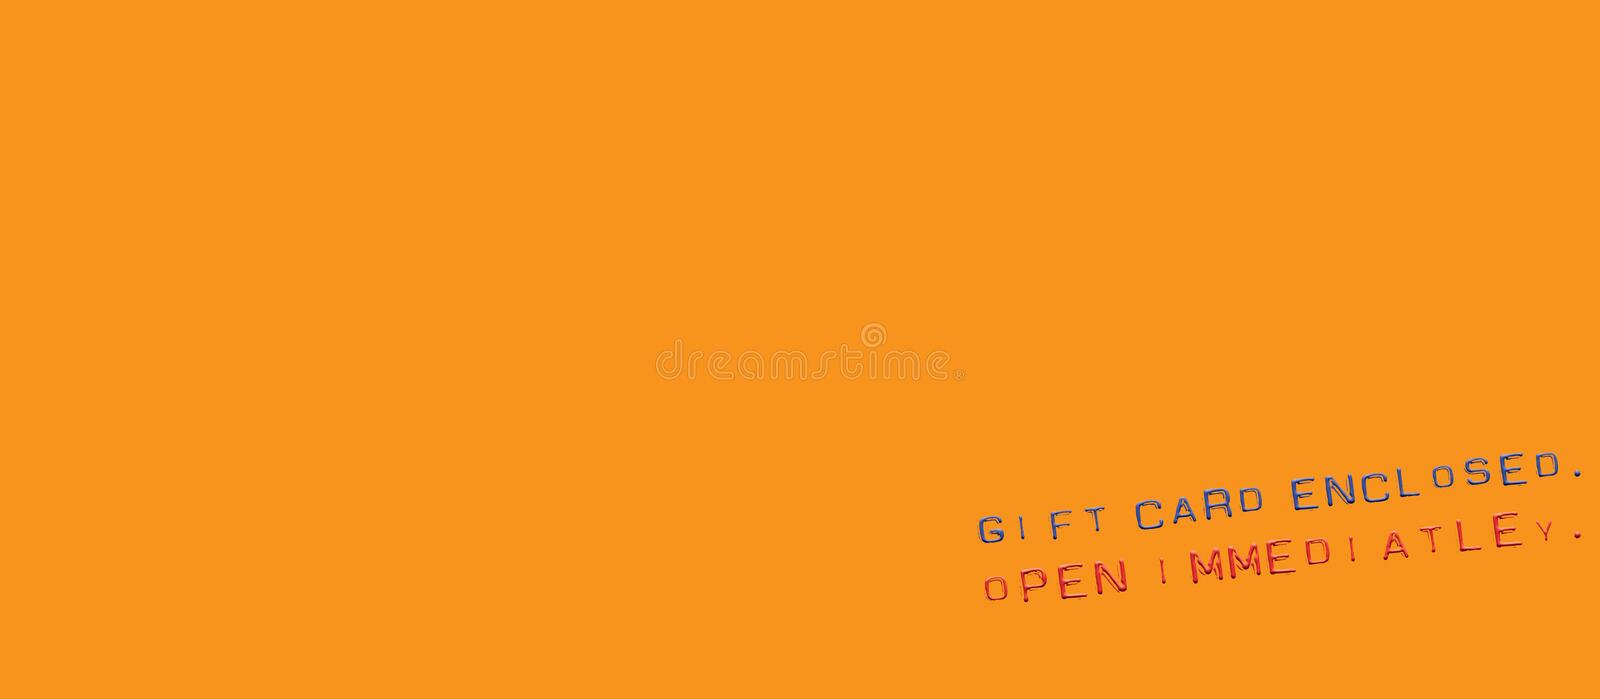 Gift card message